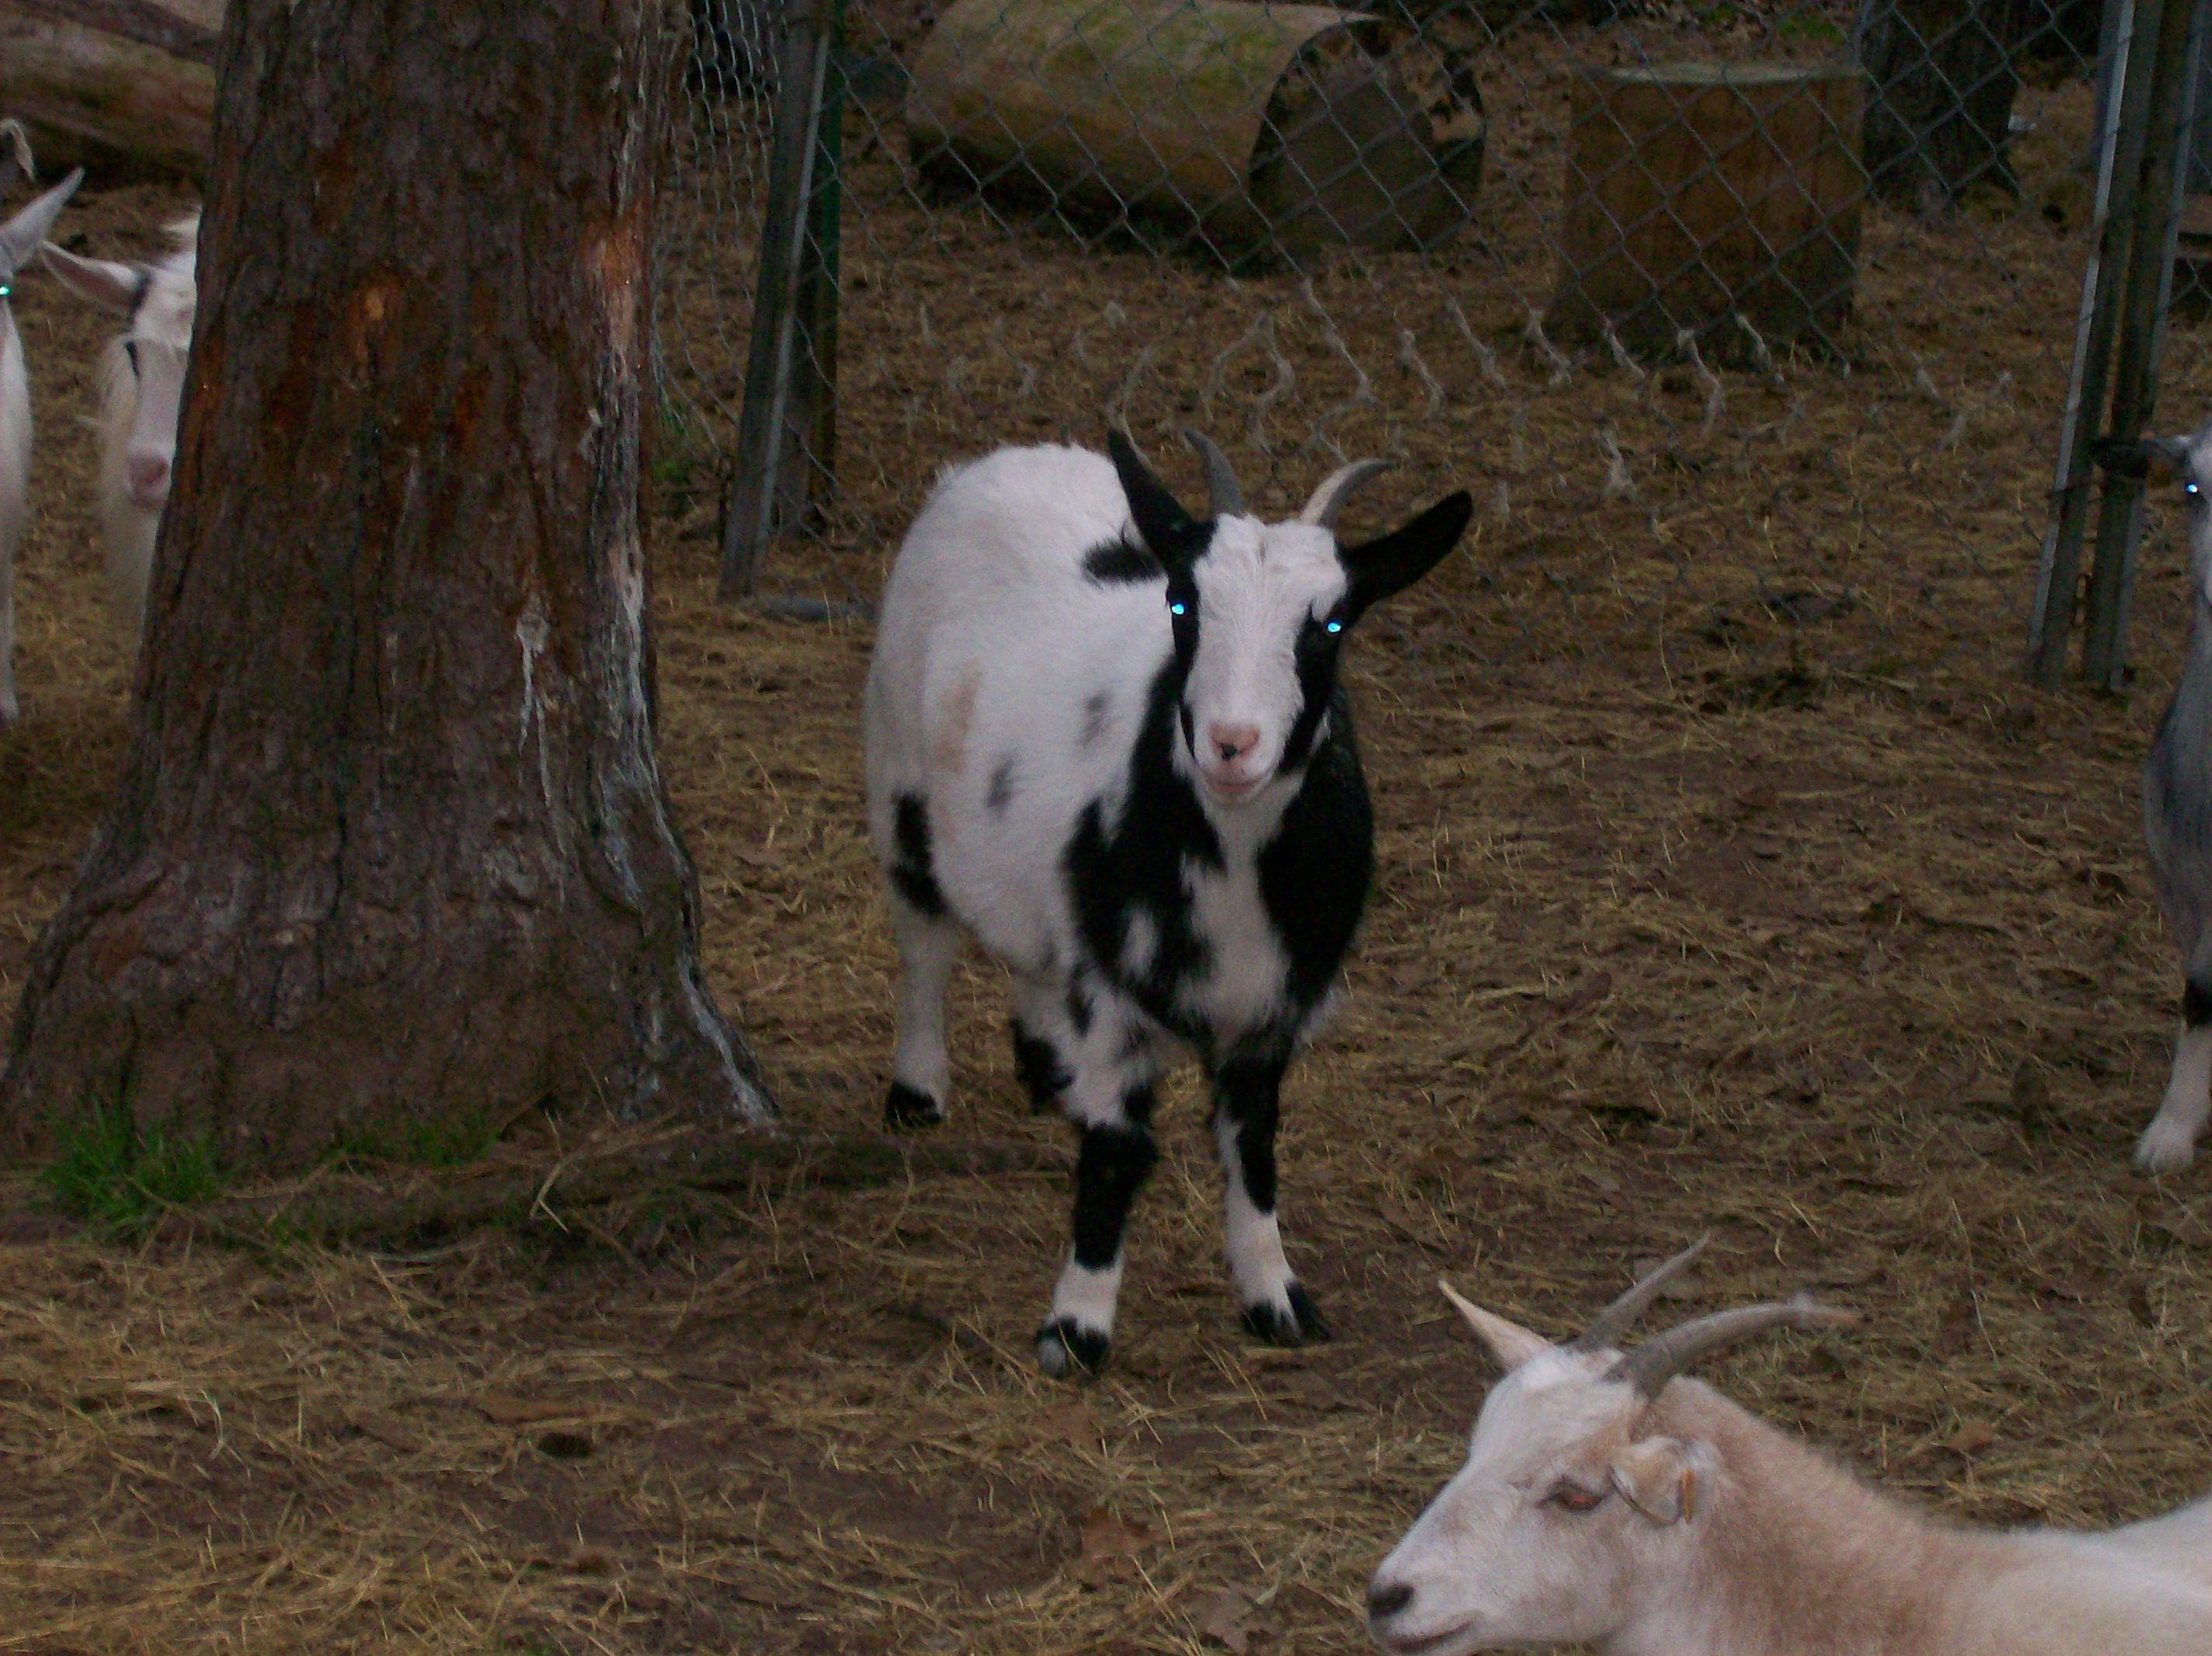 Goat breed 101: Fainting goats